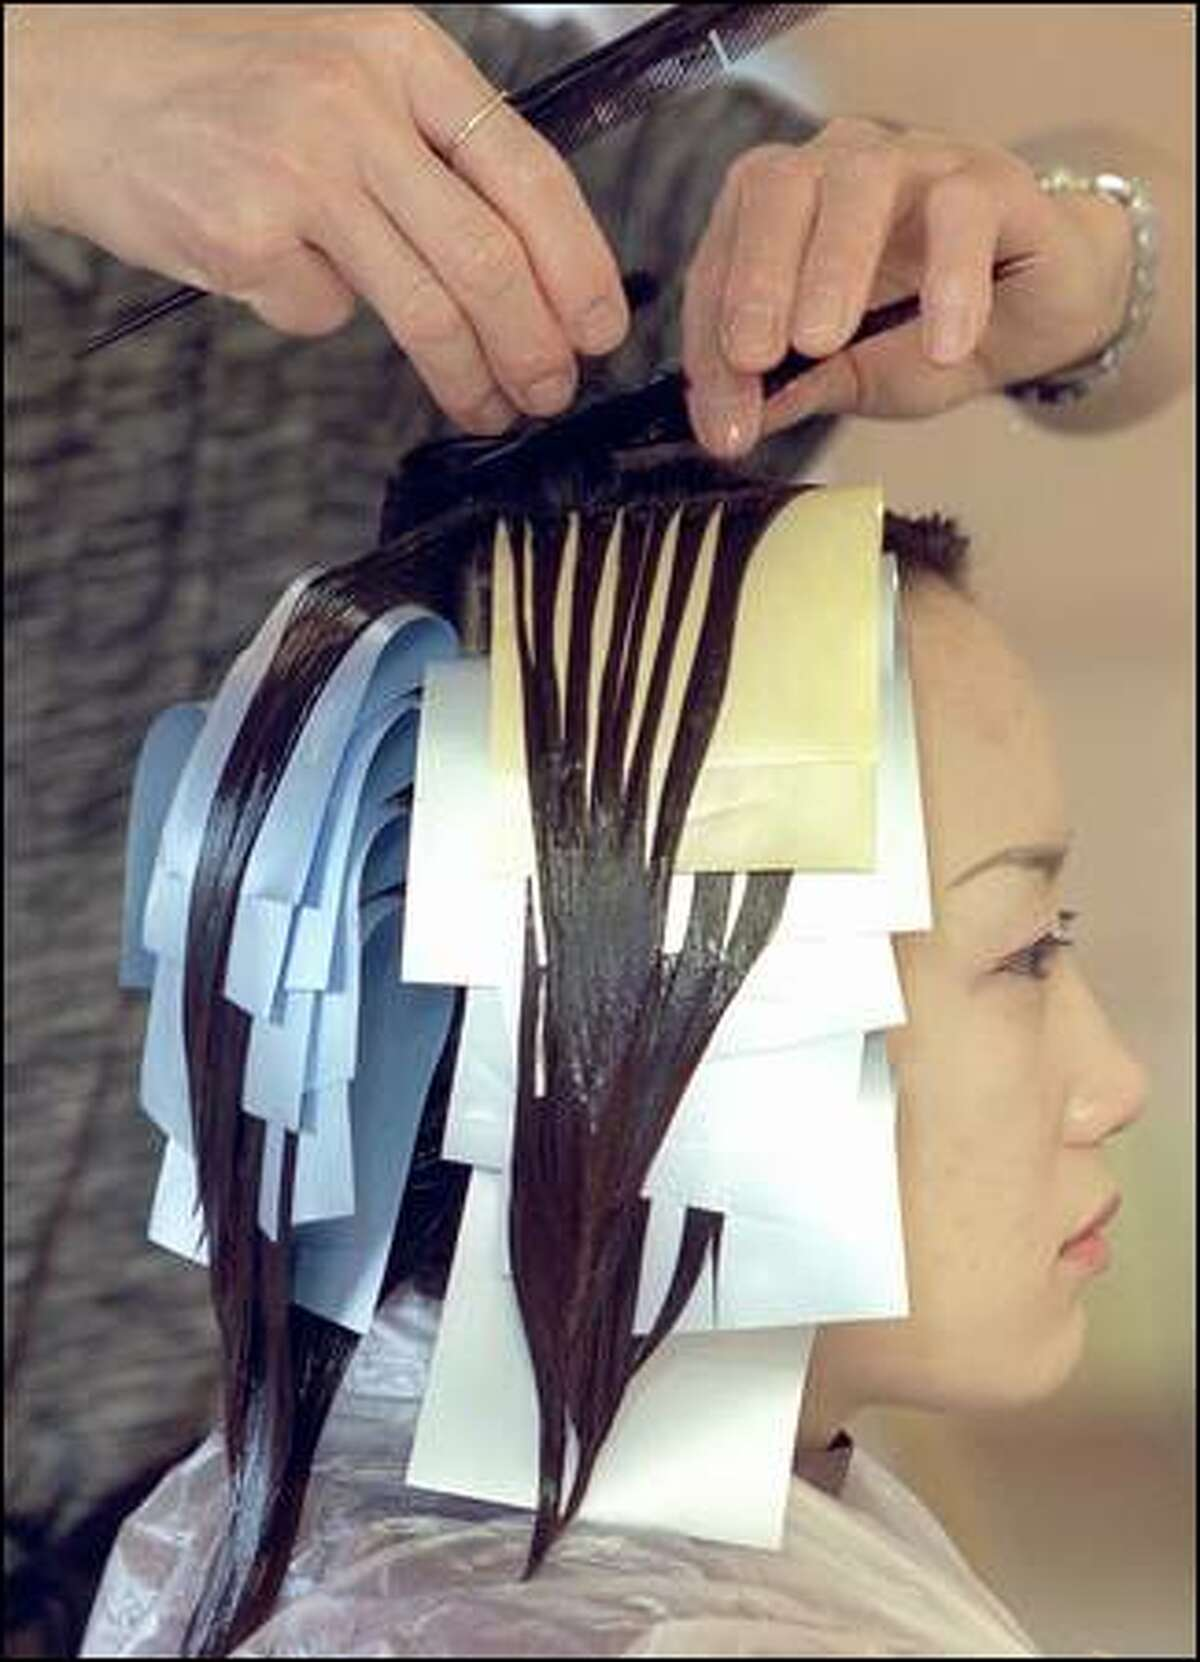 At Salon Juno at Uwajimaya Village, co-owner Juno Lee treats Hye-Jin's hair with straightening solution, which breaks the shaft's cystine bonds. Some stylists separate hair in layers across paper flaps, as shown, to give the roots a lift so that the resulting super-straight hair isn't completely flattened to the scalp.